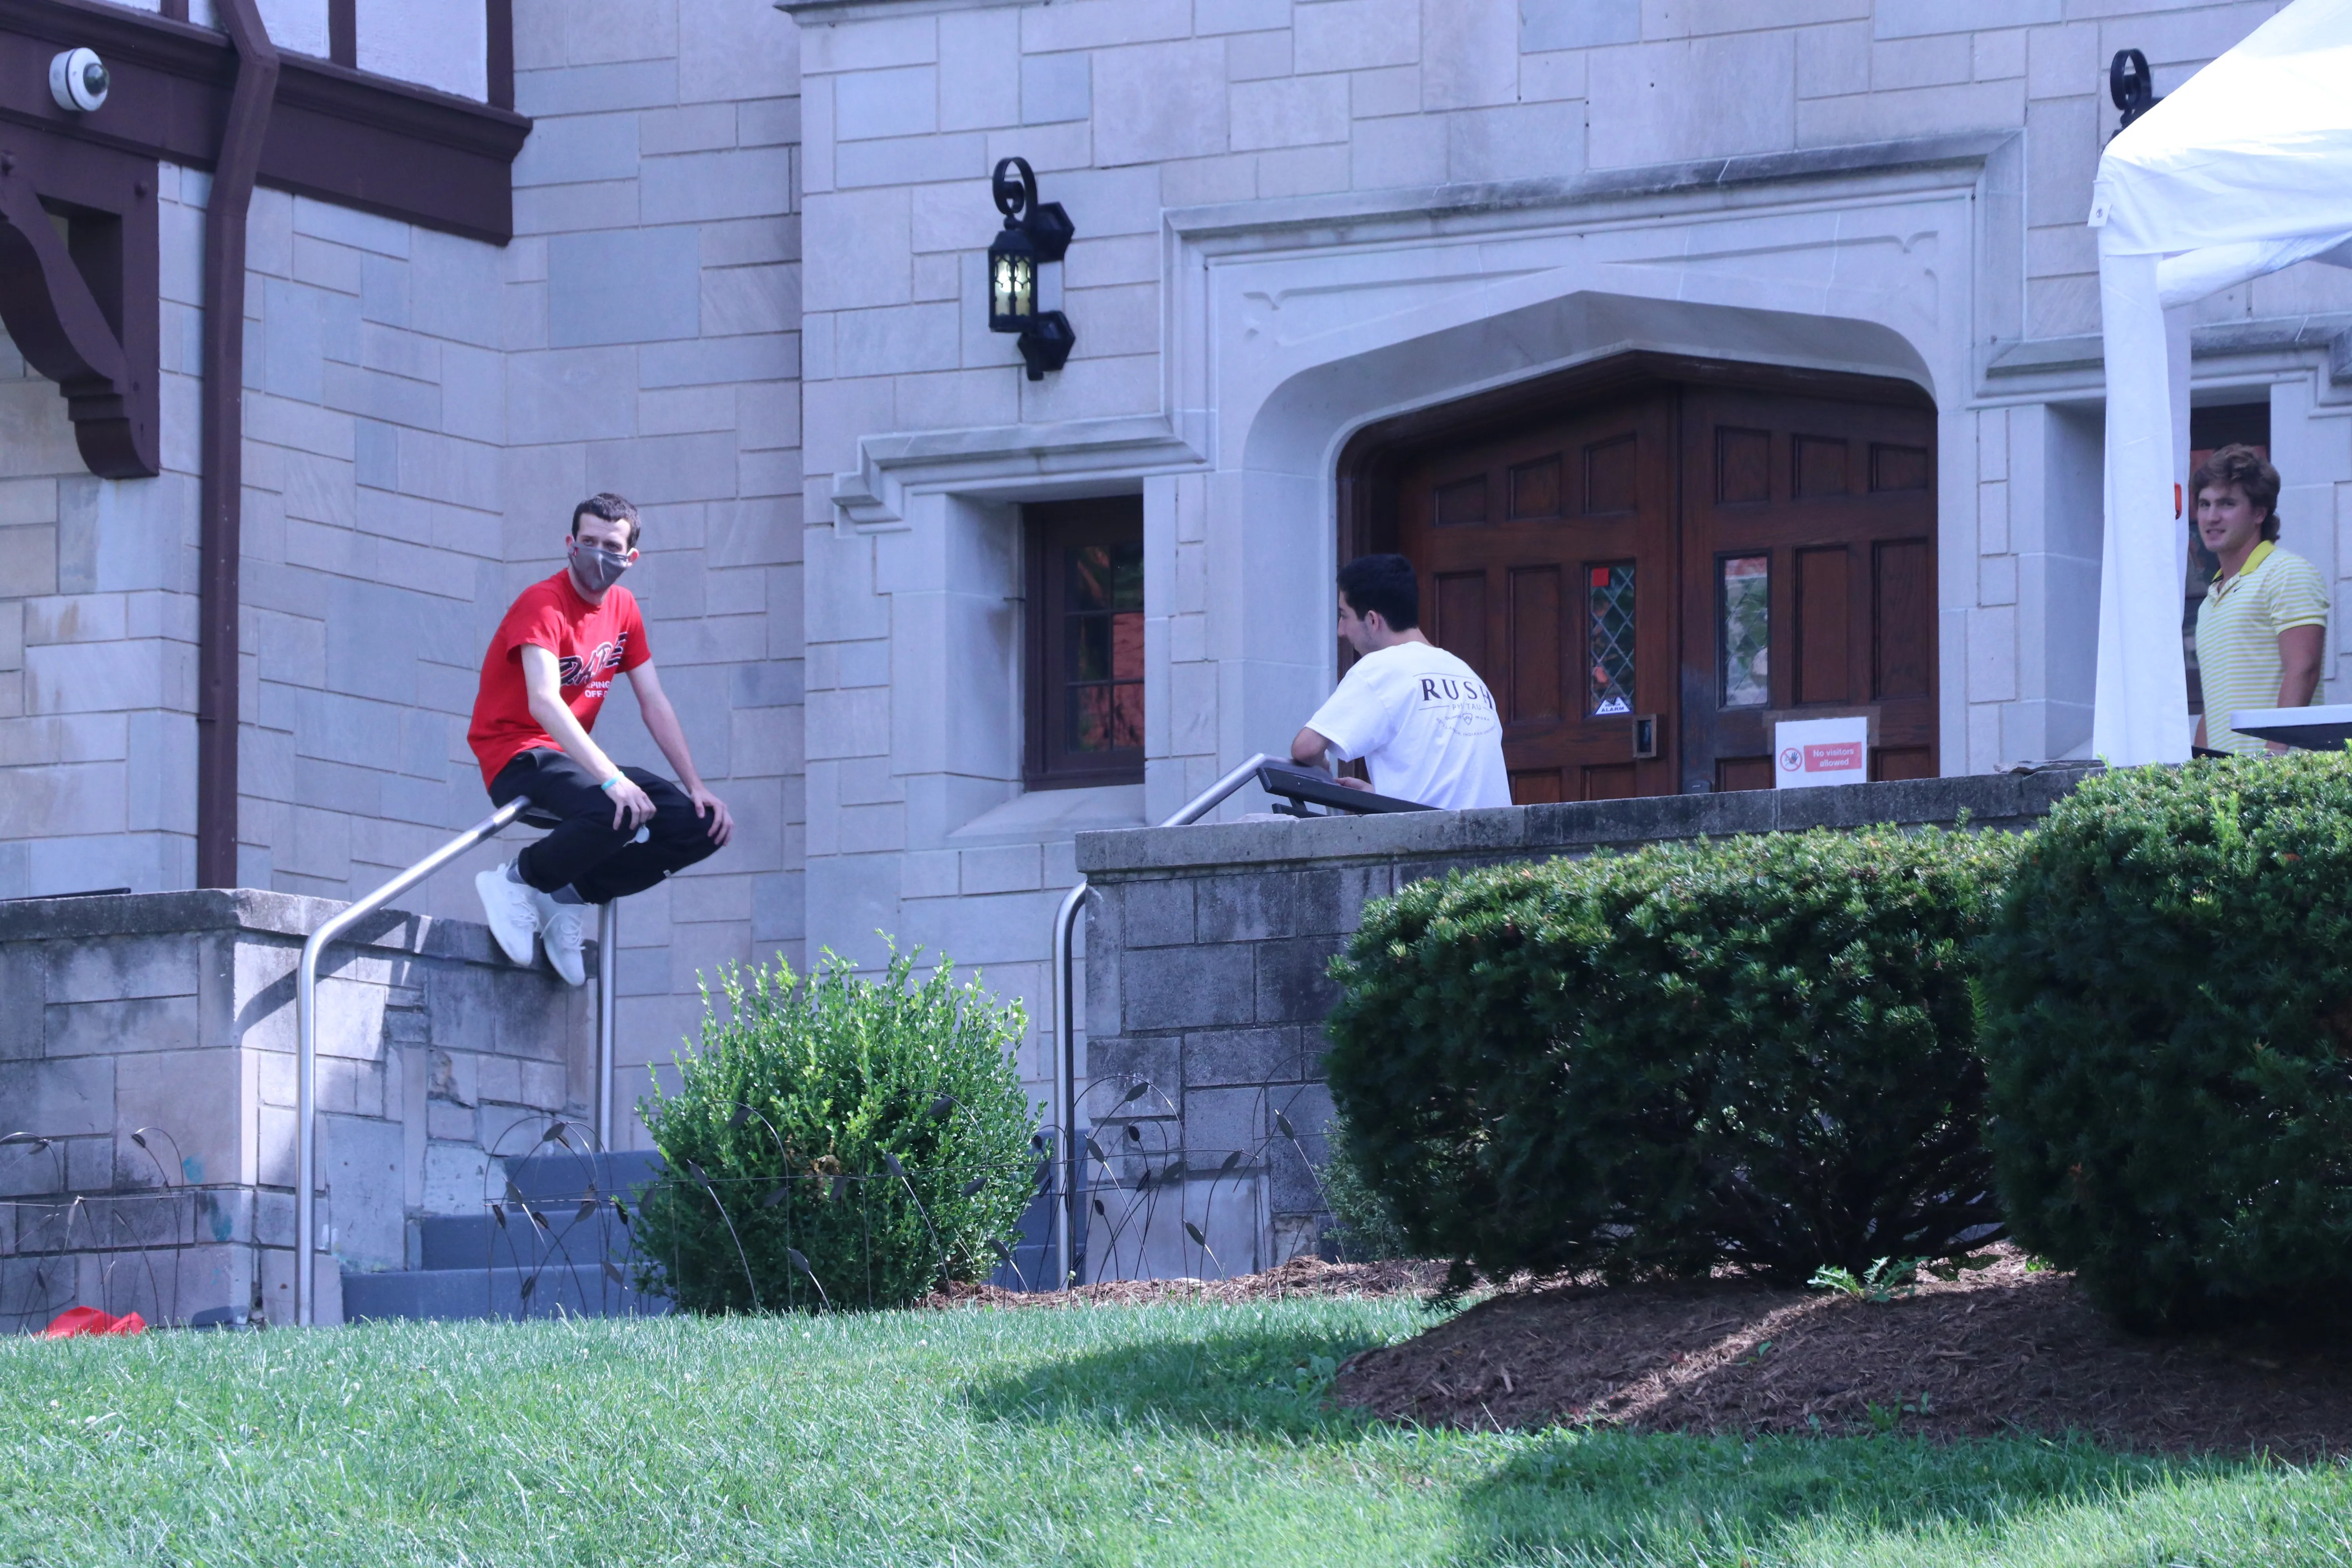 People sit outside the Phi Kappa Tau fraternity house on the Indiana University campus.